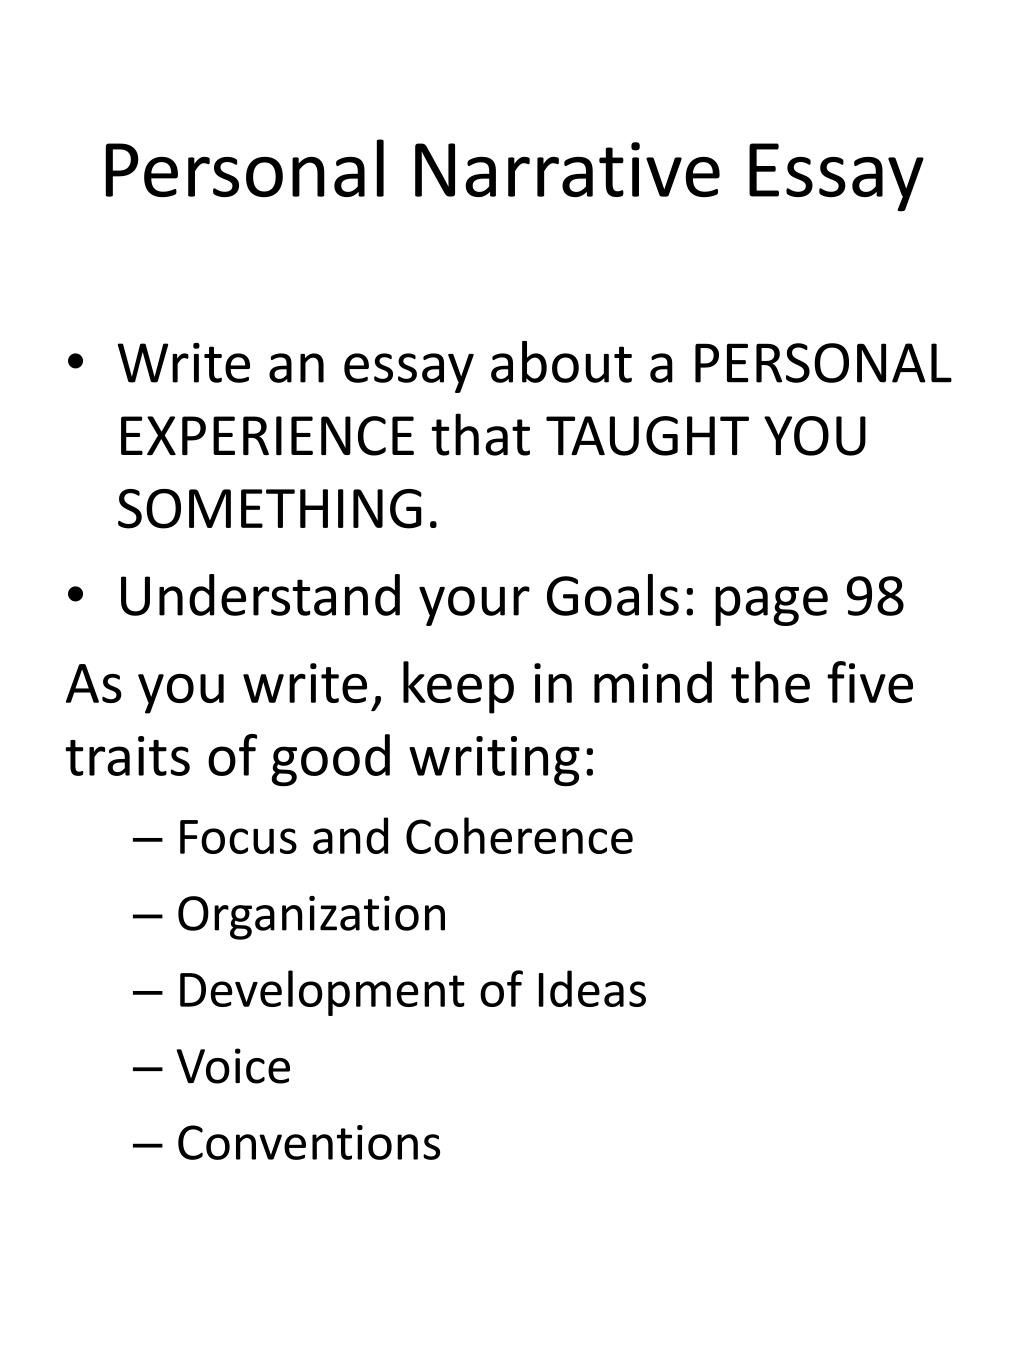 008 Striking Personal Narrative Essay High Resolution  Structure Sample School PromptFull